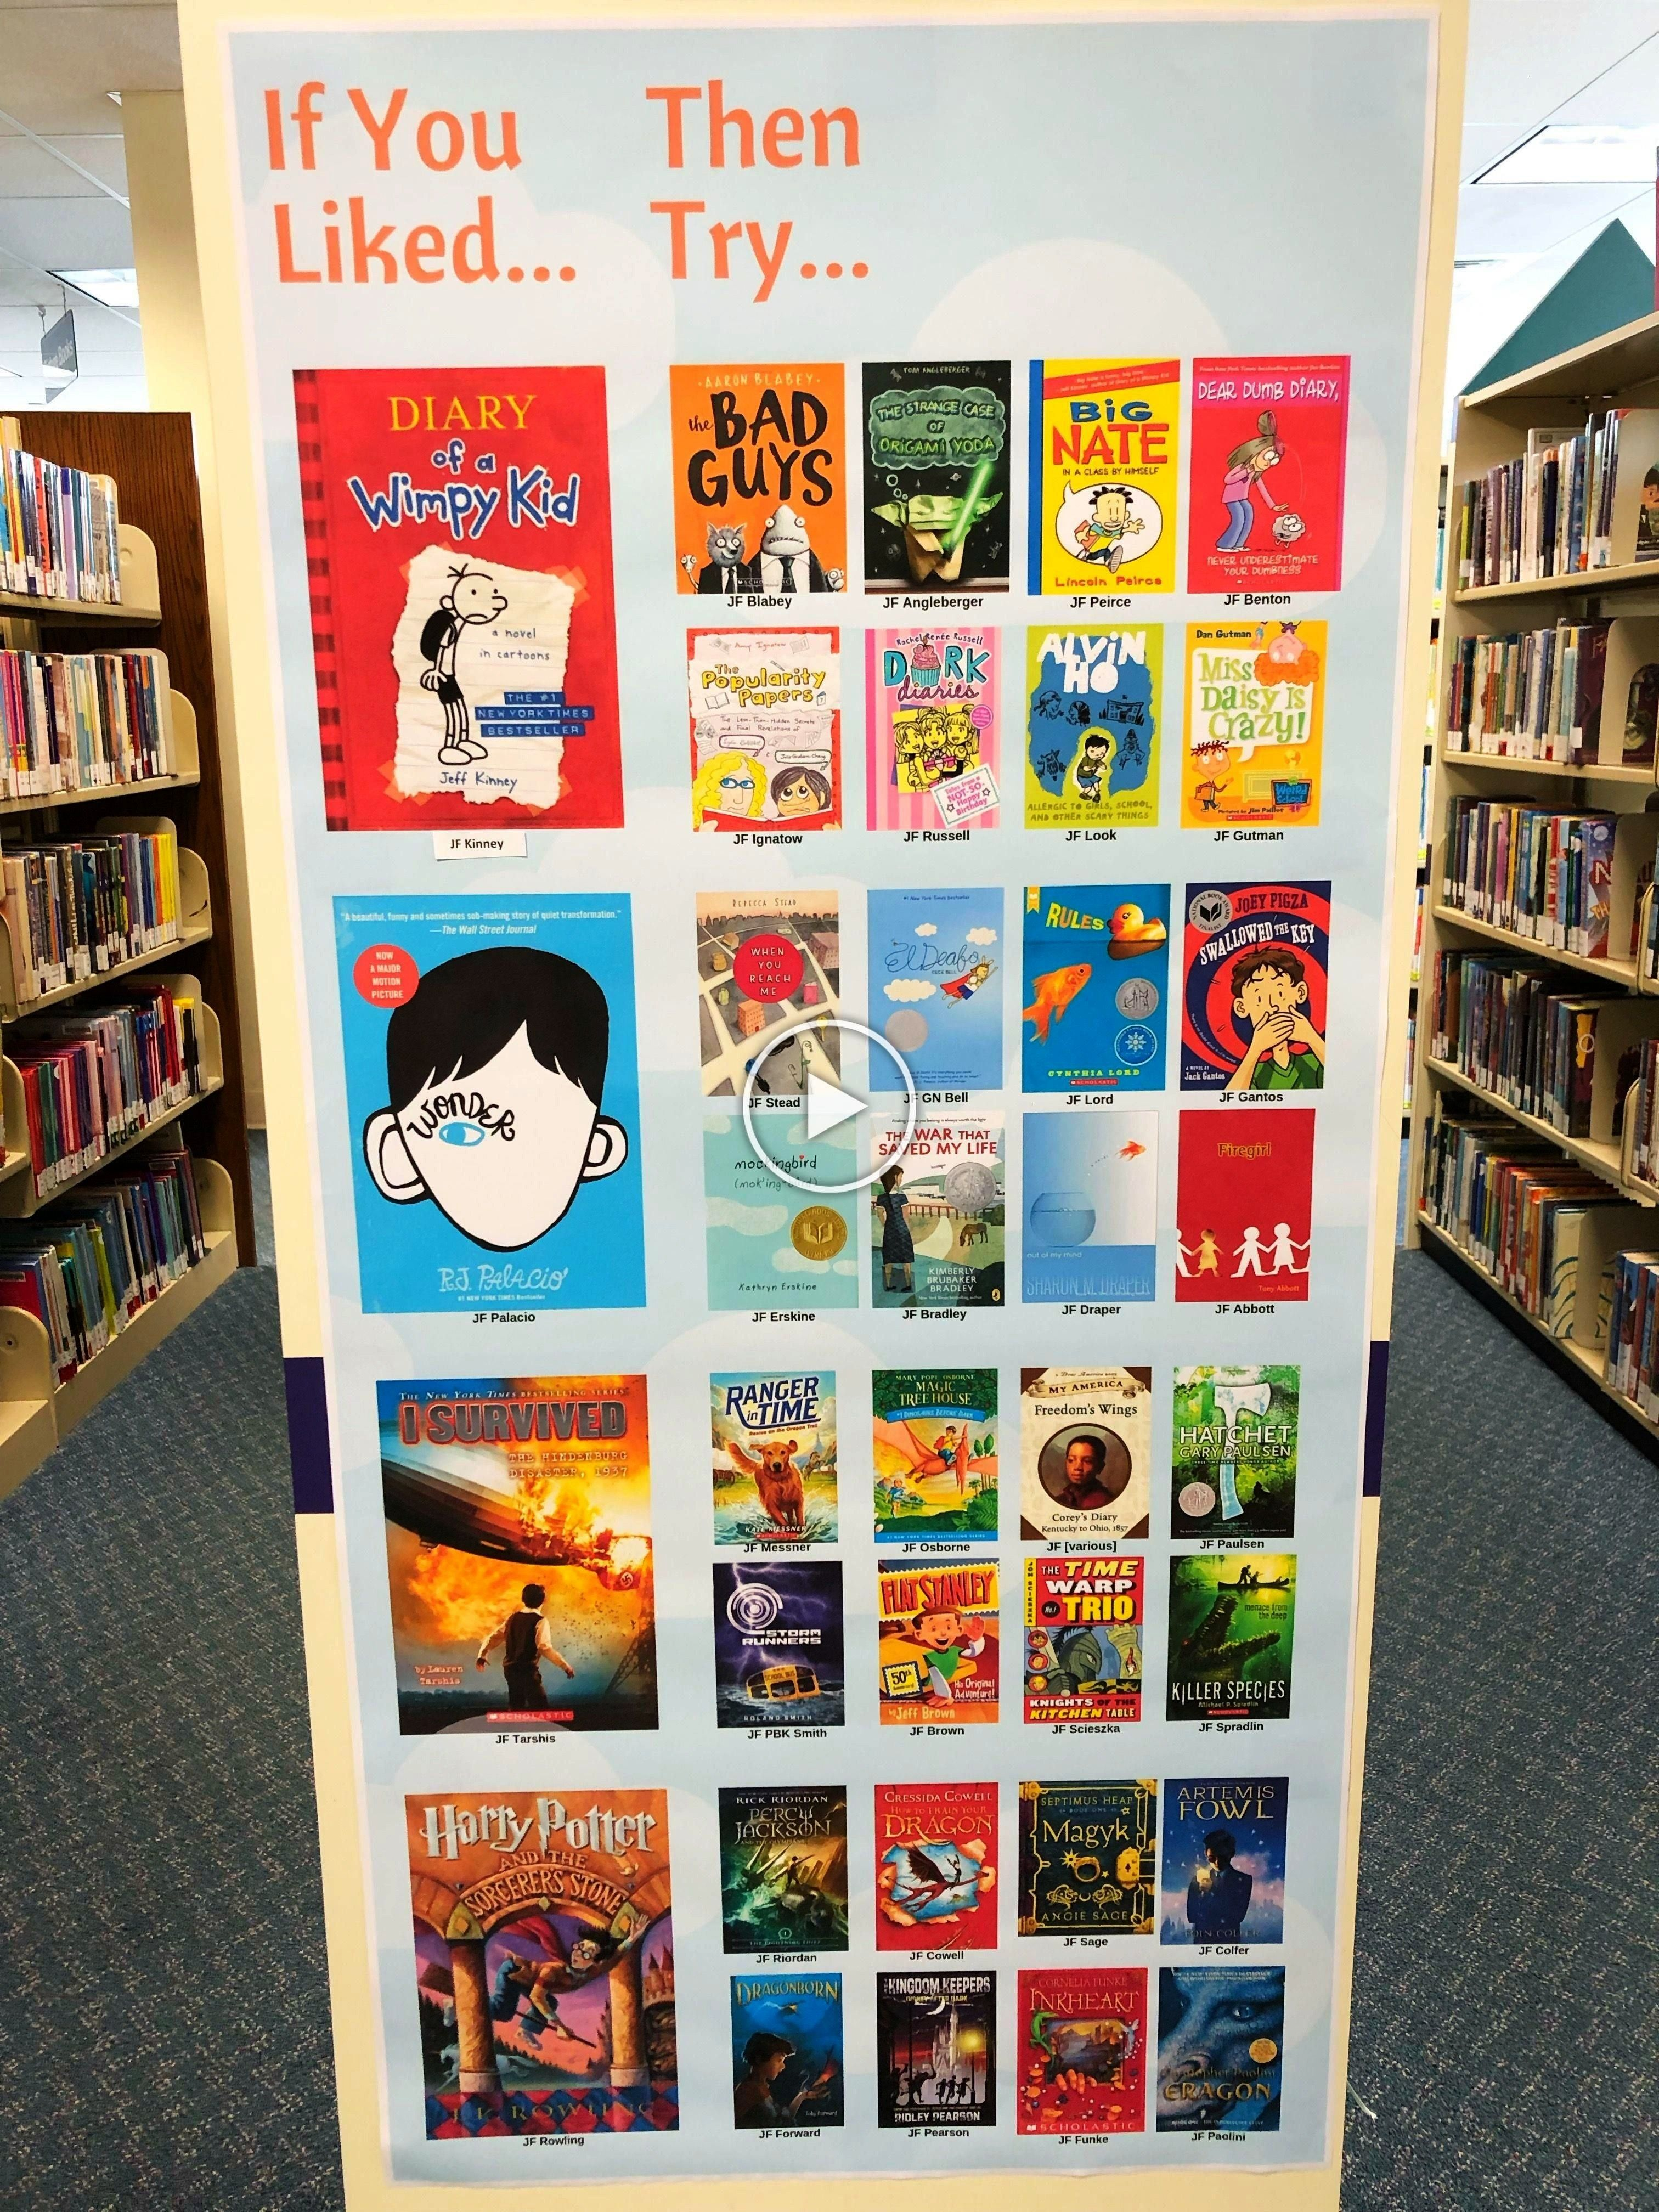 for your next great read Check the childrens room Be sure to look out for our new read alike display featuring familiar favorites Head to our website for a printable PDFL...